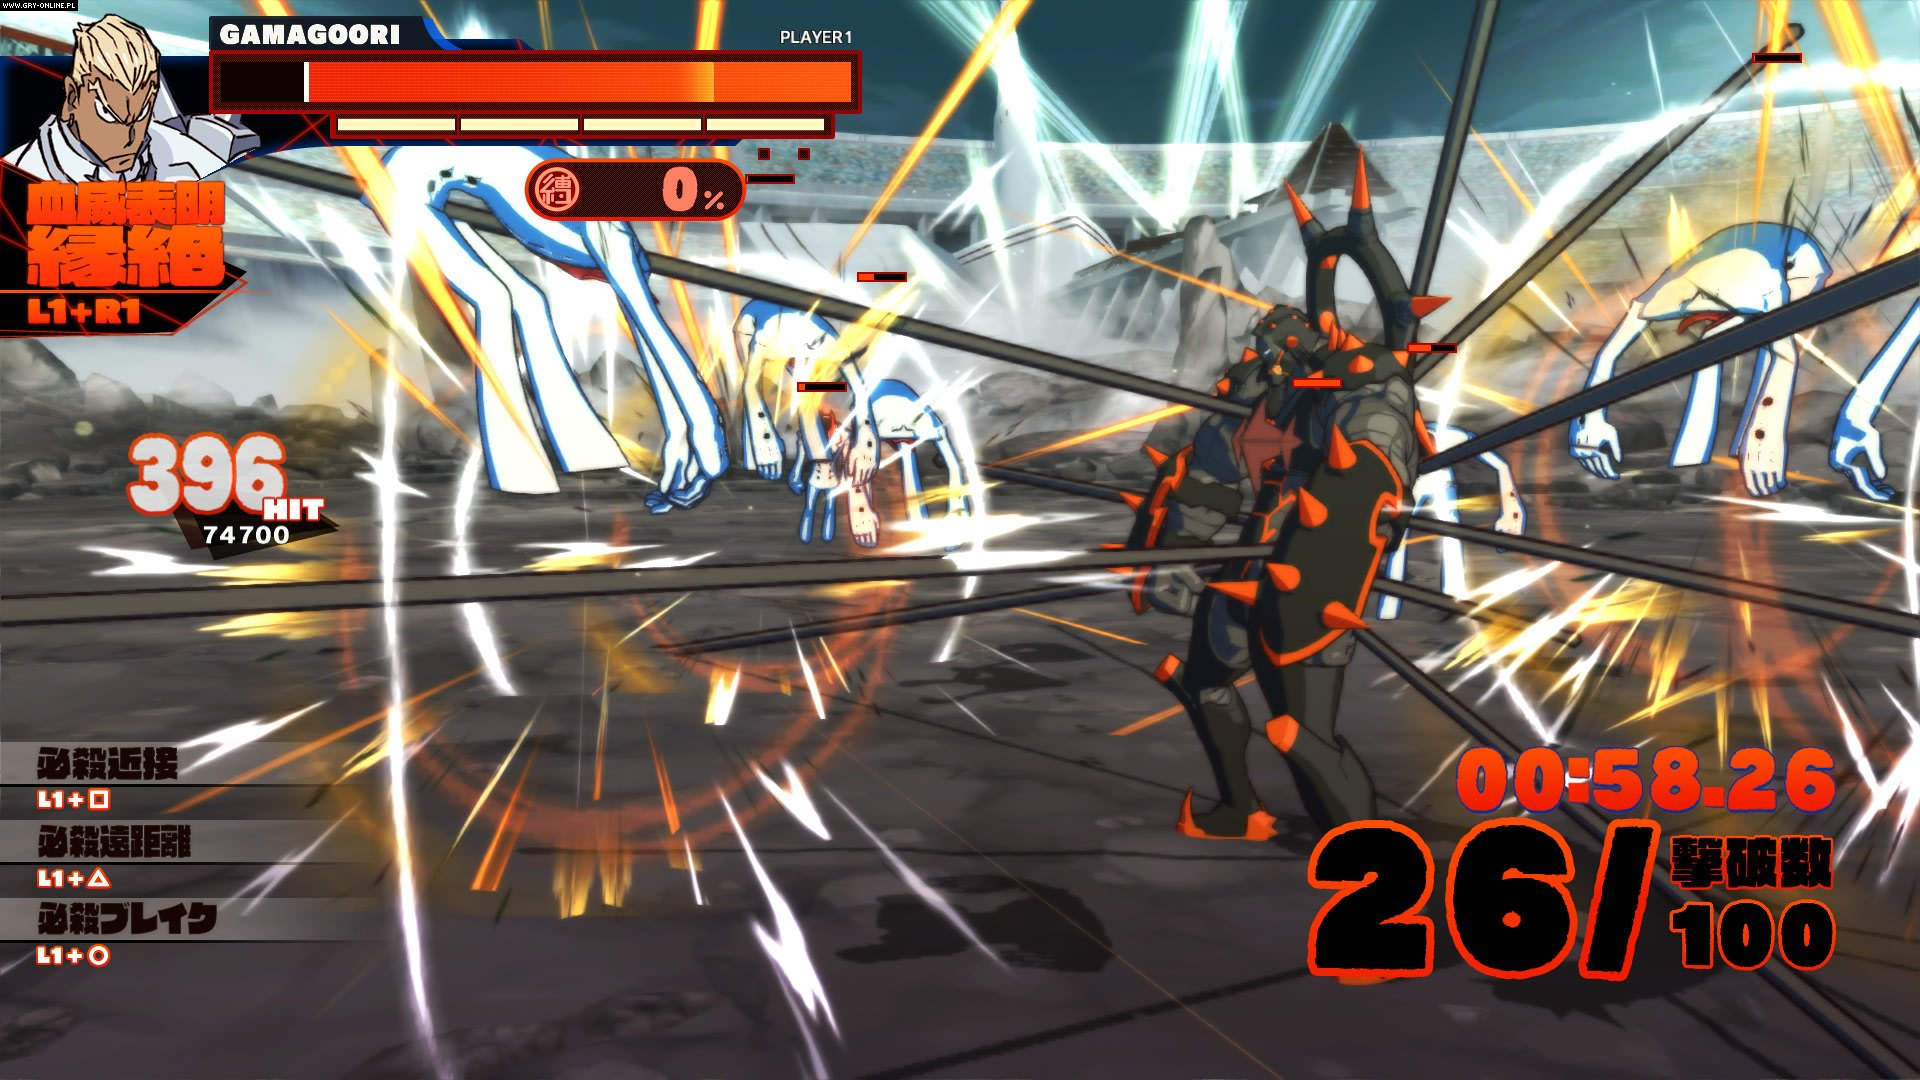 Kill la Kill: IF PC, PS4 Games Image 21/39, APlus Games, Arc System Works